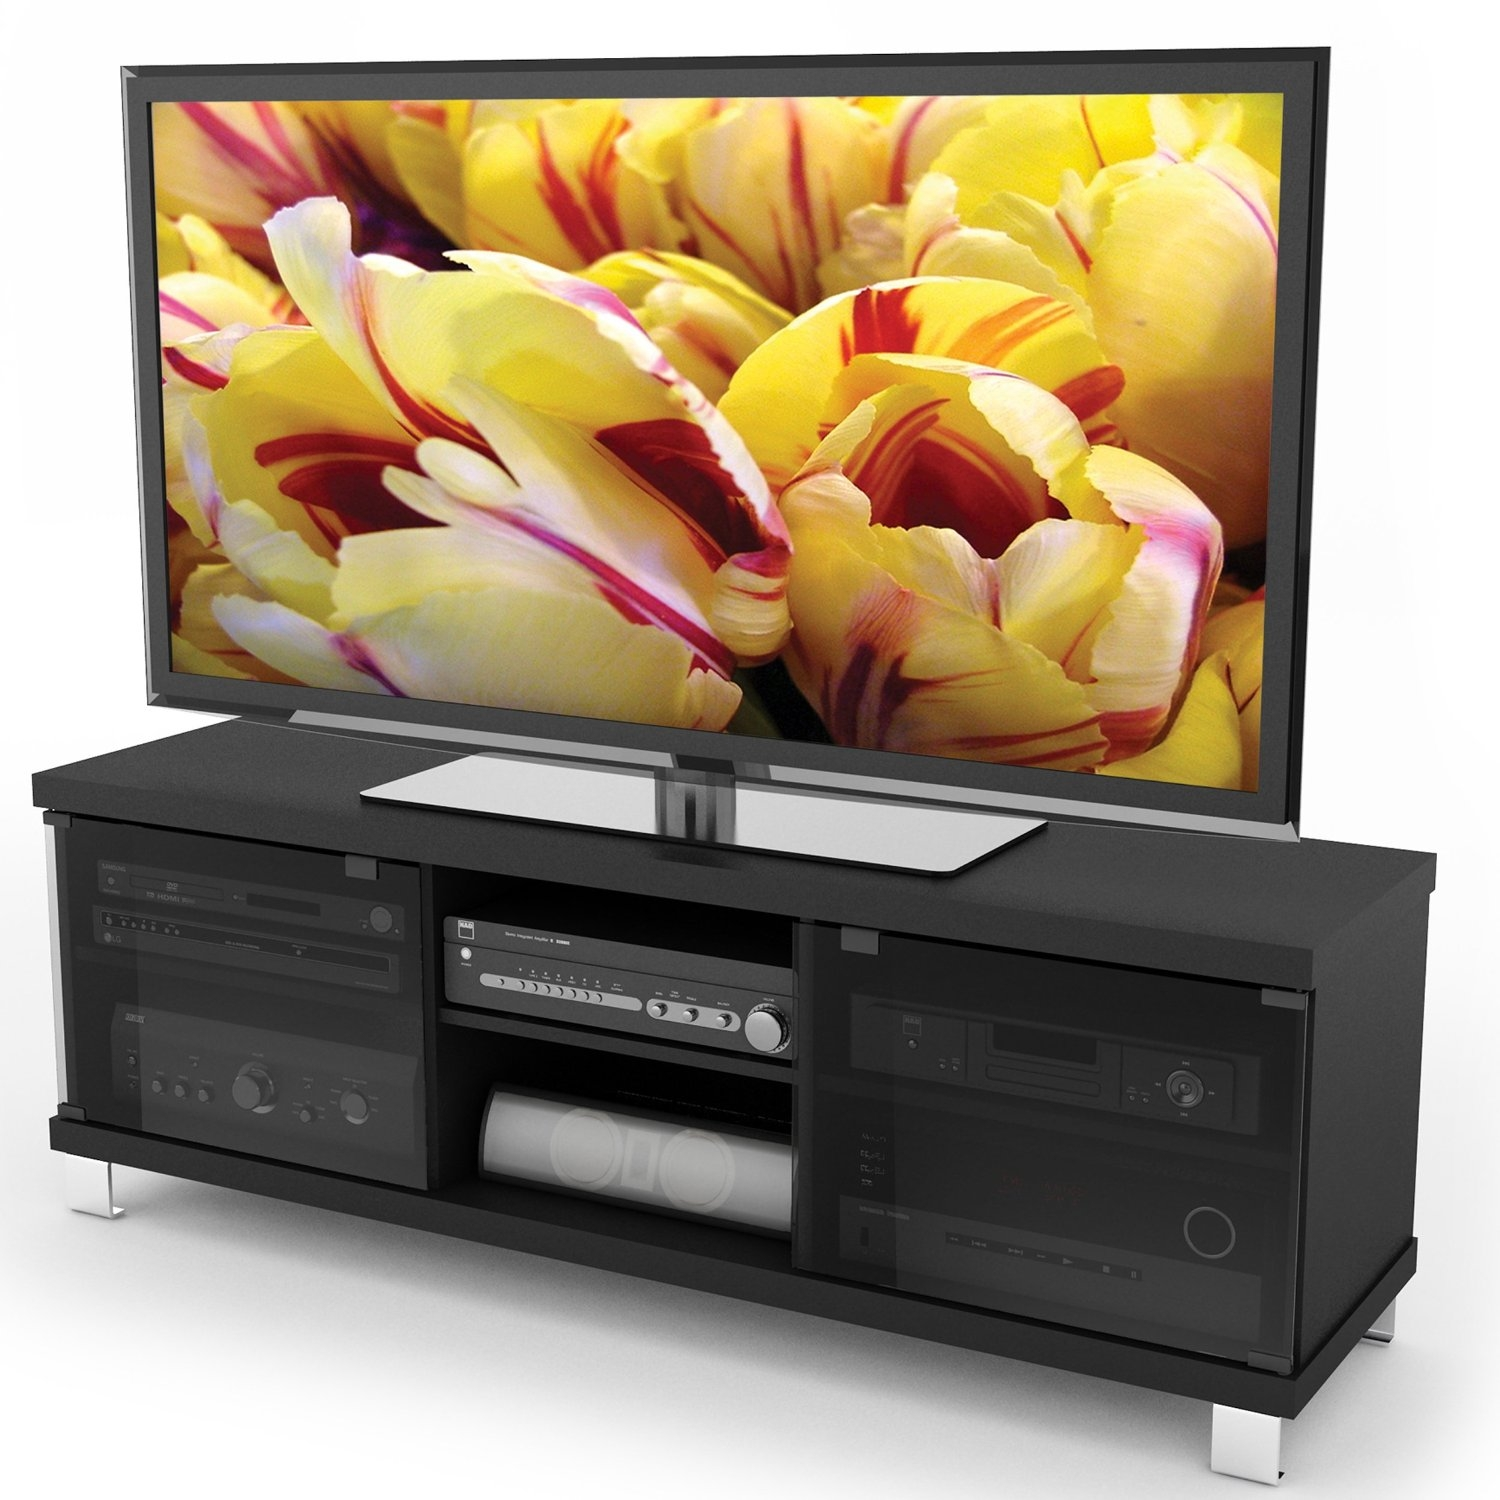 Modern Black Tv Stand With Glass Doors Fits Up To 68 Inch Tv